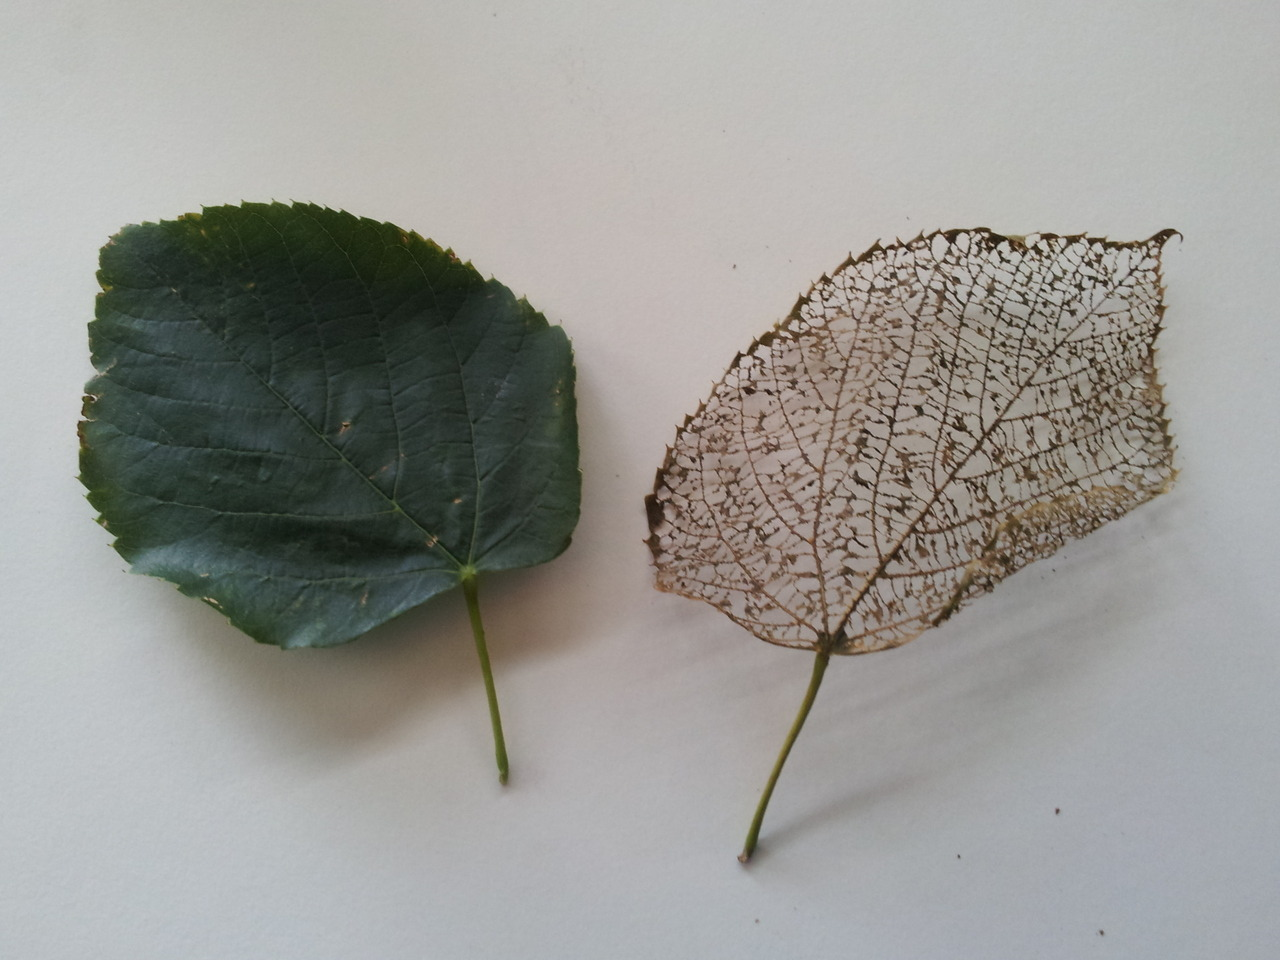 There is something almost fractal or mathematical about the leaf after being stripped of all its green loveliness.